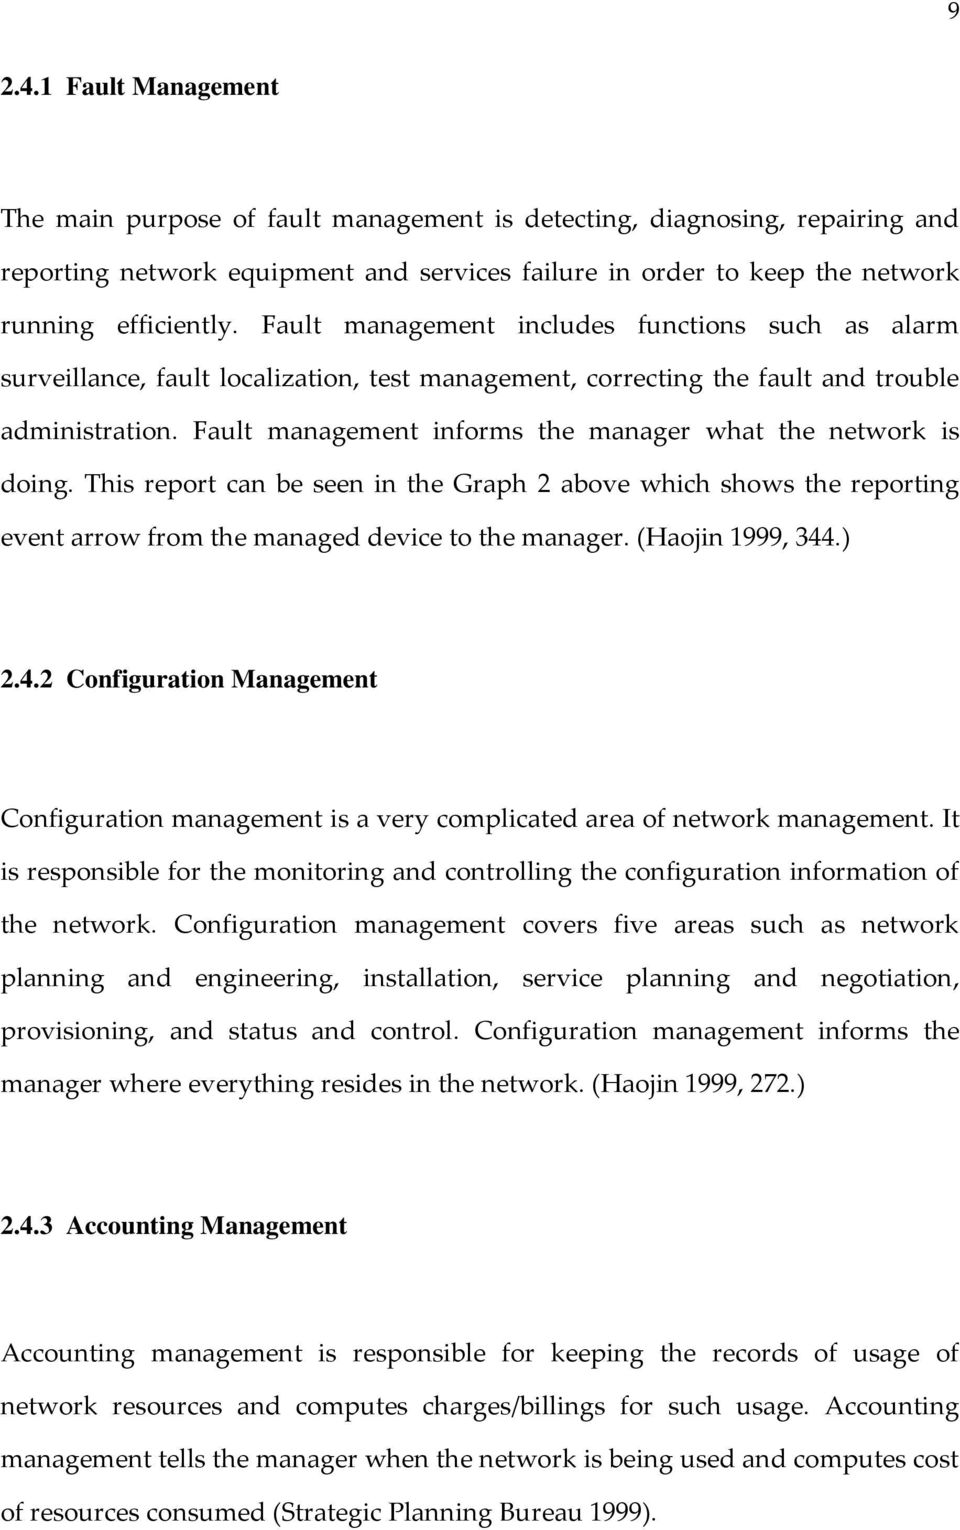 Fault management informs the manager what the network is doing. This report can be seen in the Graph 2 above which shows the reporting event arrow from the managed device to the manager.